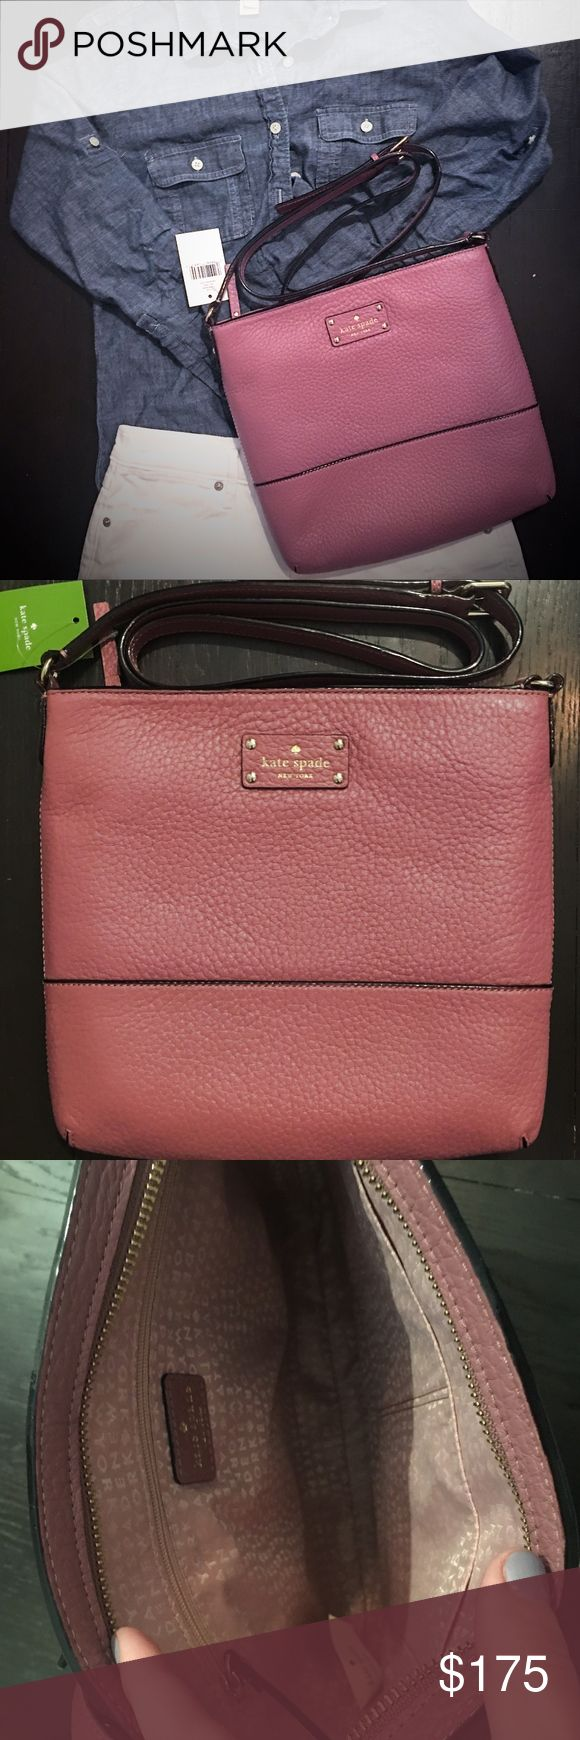 "Kate Spade Bay Street Cora Kate Spade Bay Street Cora Purse CONDITION: NWT COLOR : Rick Rum Raisin (light plum) BEAUTIFUL NEW FALL COLOR!  • COWHIDE TRIM • 14K GOLDPLATED HARDWARE • ZIP CLOSURE • CROSSBODY • ADJUSTABLE STRAP UP TO 47"" • MEASURES APPROX 10.1"" w x 10.1"" l x 1.2""d • Embossed KATE SPADE NY LICENSE PLATE • INTERIOR HAS 2 SLIP POCKETS/1 ZIPPERED POCKET • JACQUARD LINING   Last  2 photos are stock photos  Feel free to make me an offer! Or bundle and I'll send your a private…"